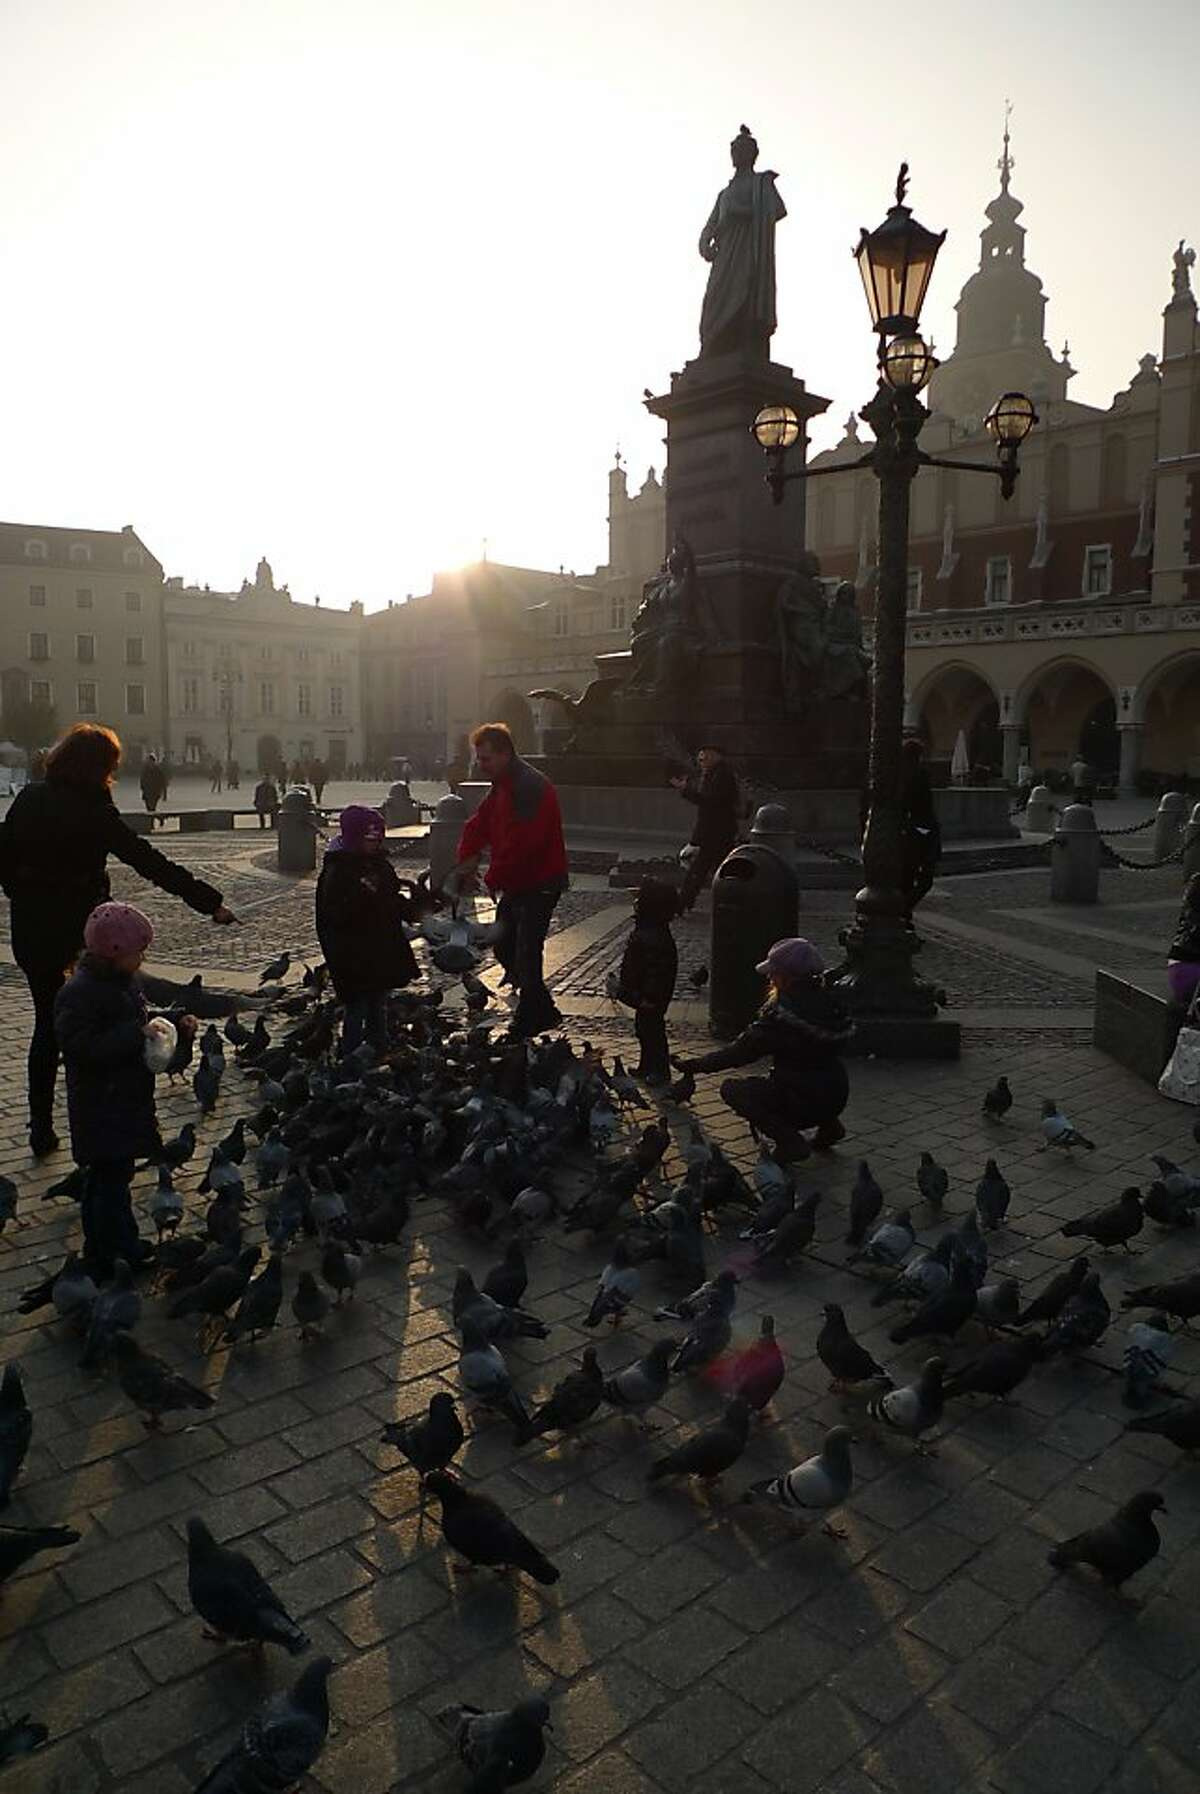 Children feed the ubiquitous pigeons on Market Square as the sun begins to set on Krakow.